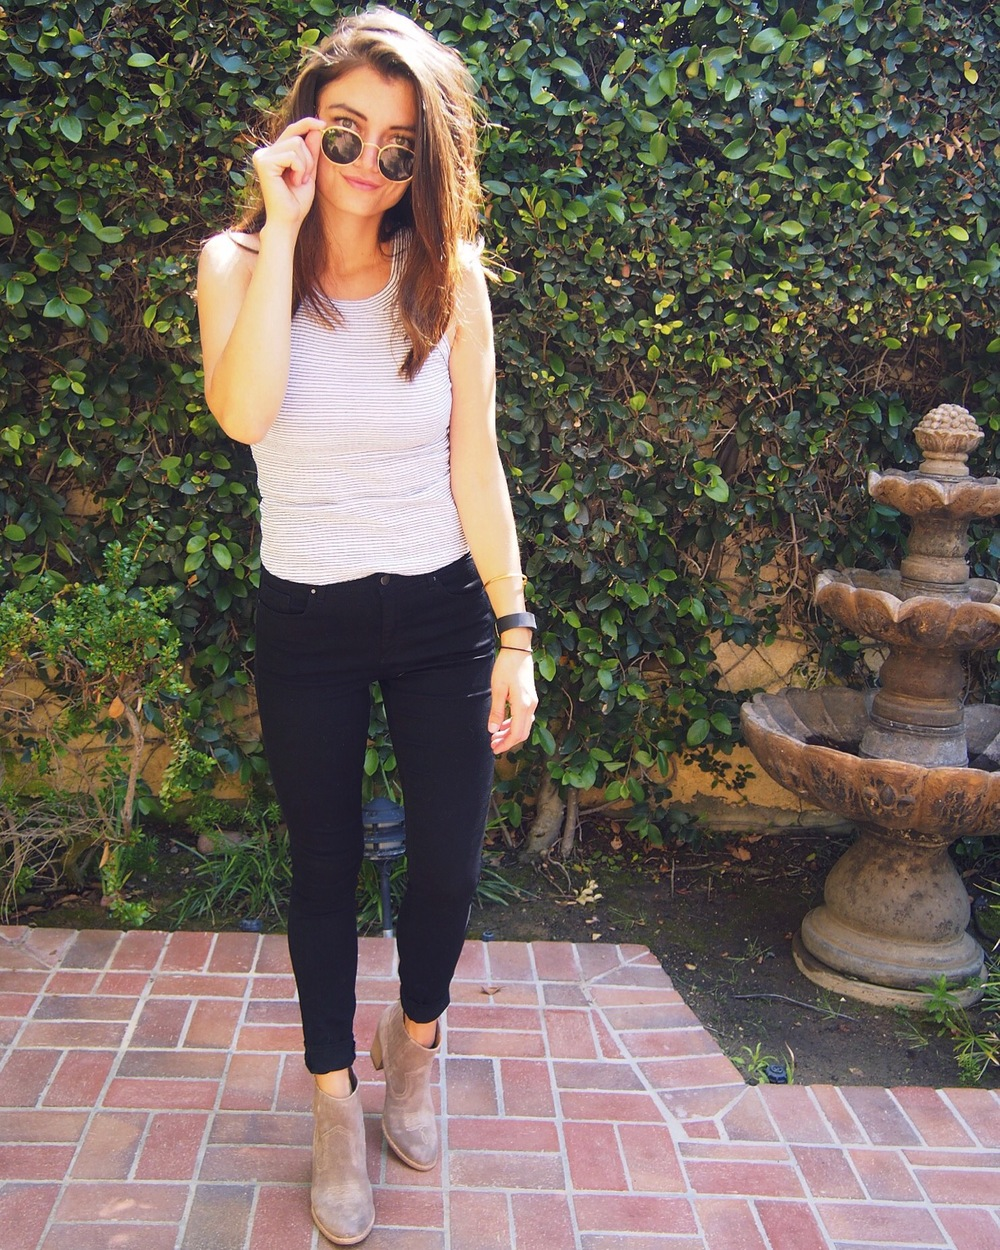 Top: Zara. Jeans: Topshop. Boots: Lucky Brand. Sunglasses: Ray-Ban.